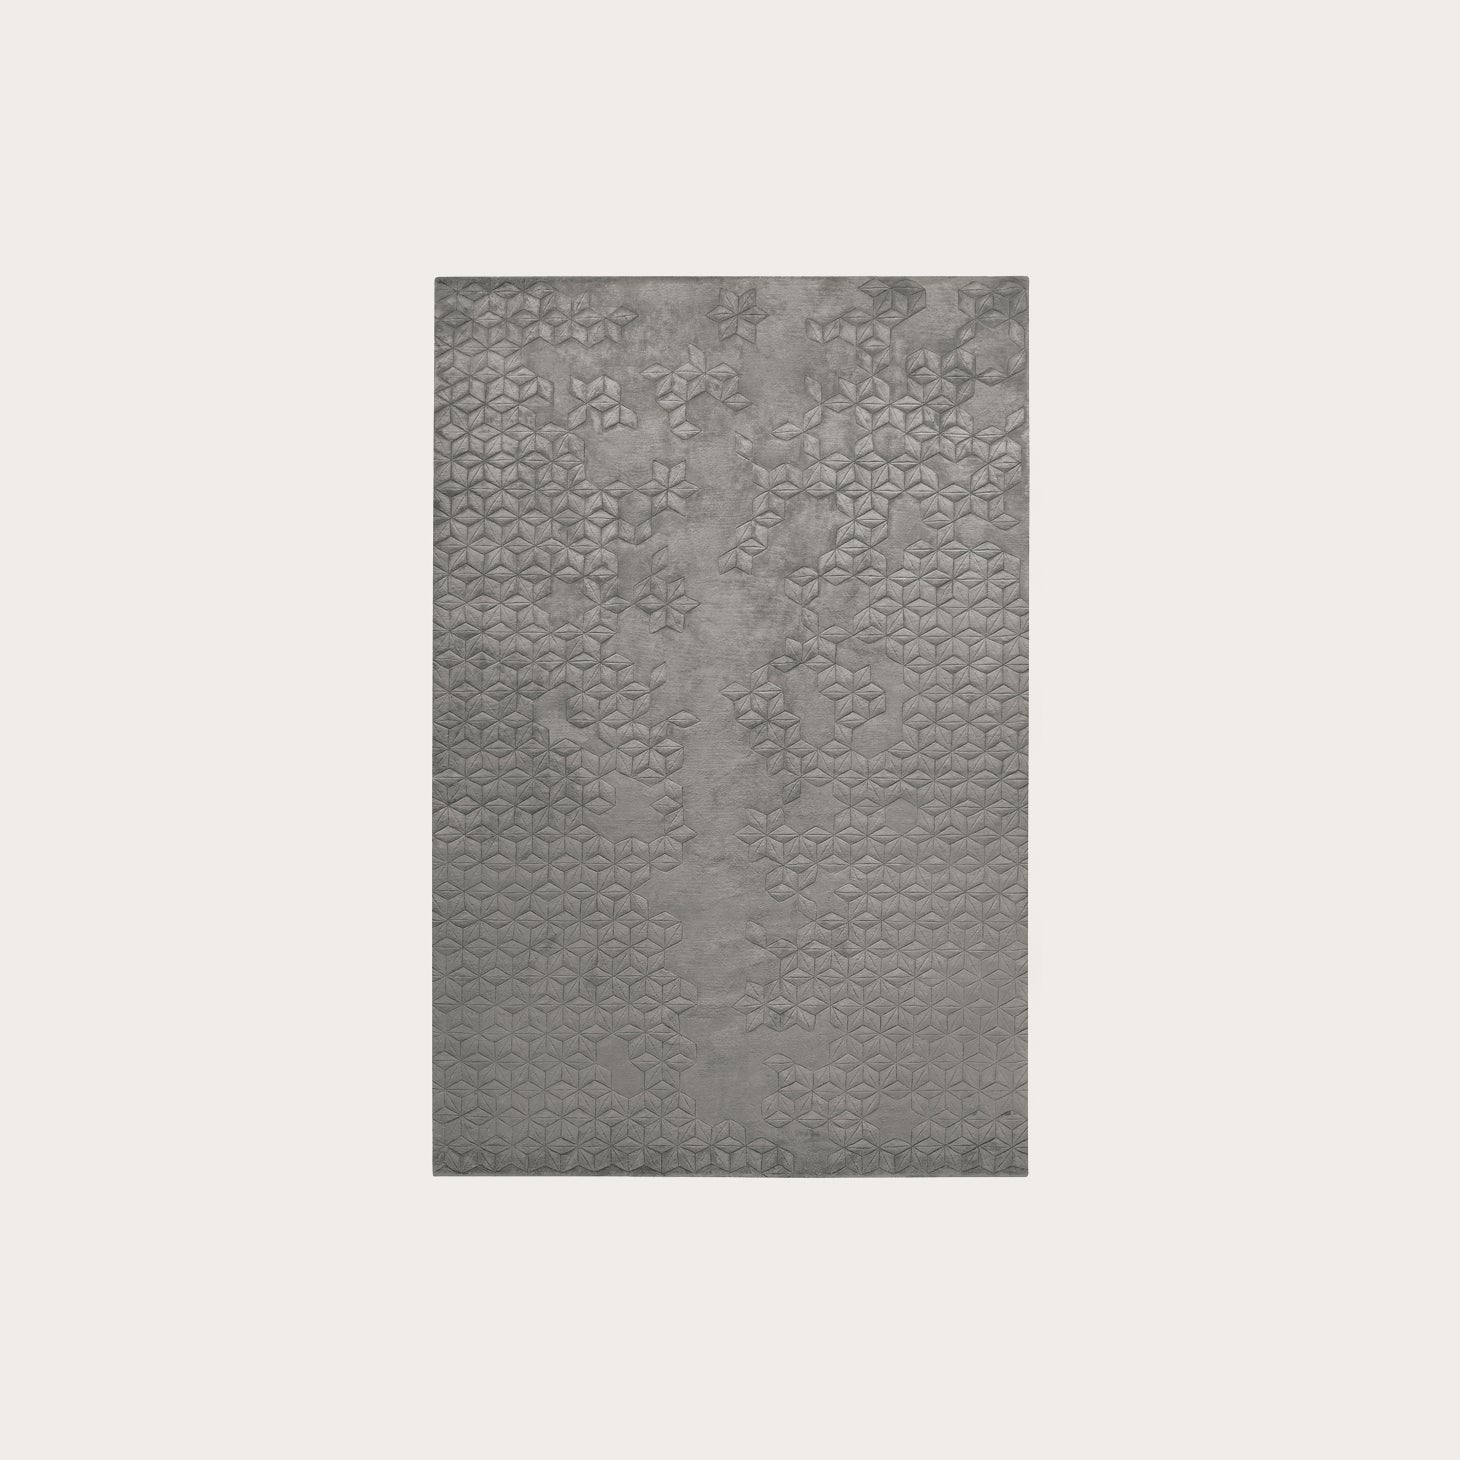 Star Silk Charcoal Floor Coverings Helen Amy Murray Designer Furniture Sku: 391-150-11275